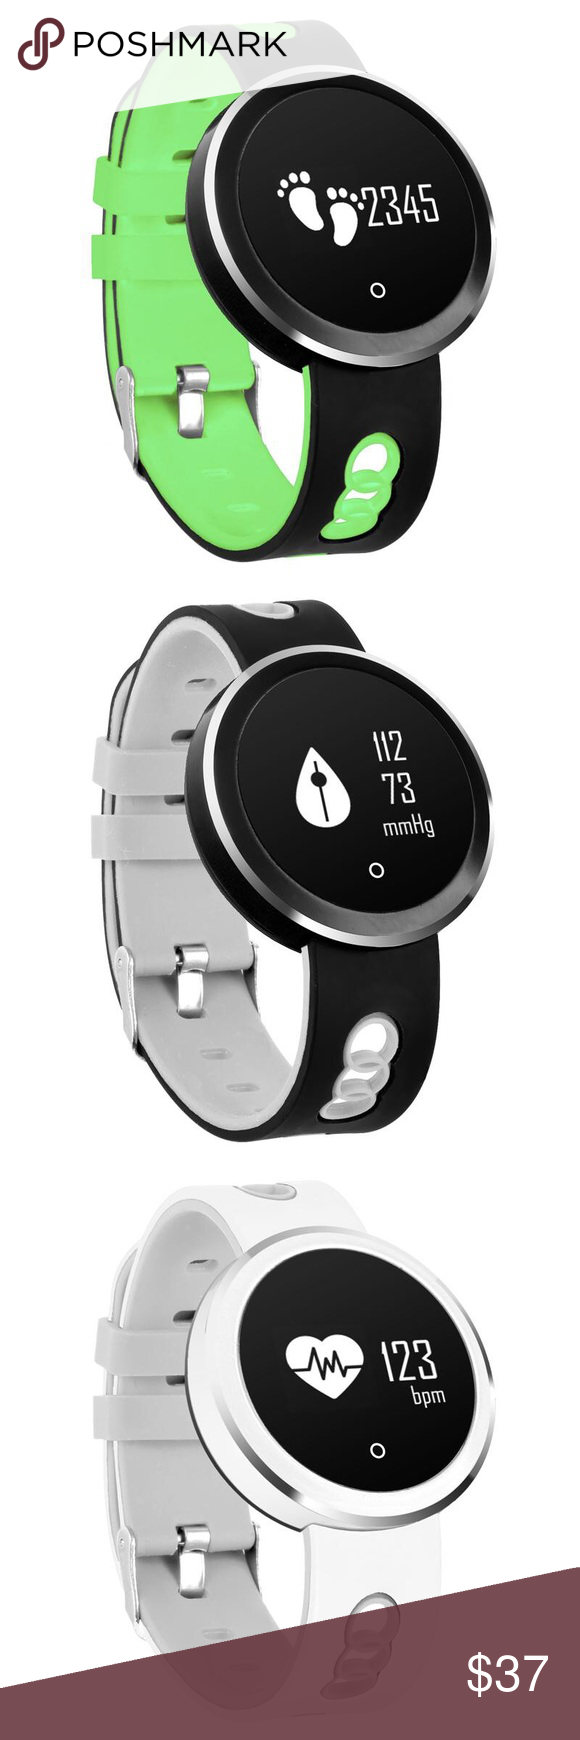 The Q7 Smartwatch On Sale for just $37 + Free Shipping! Features